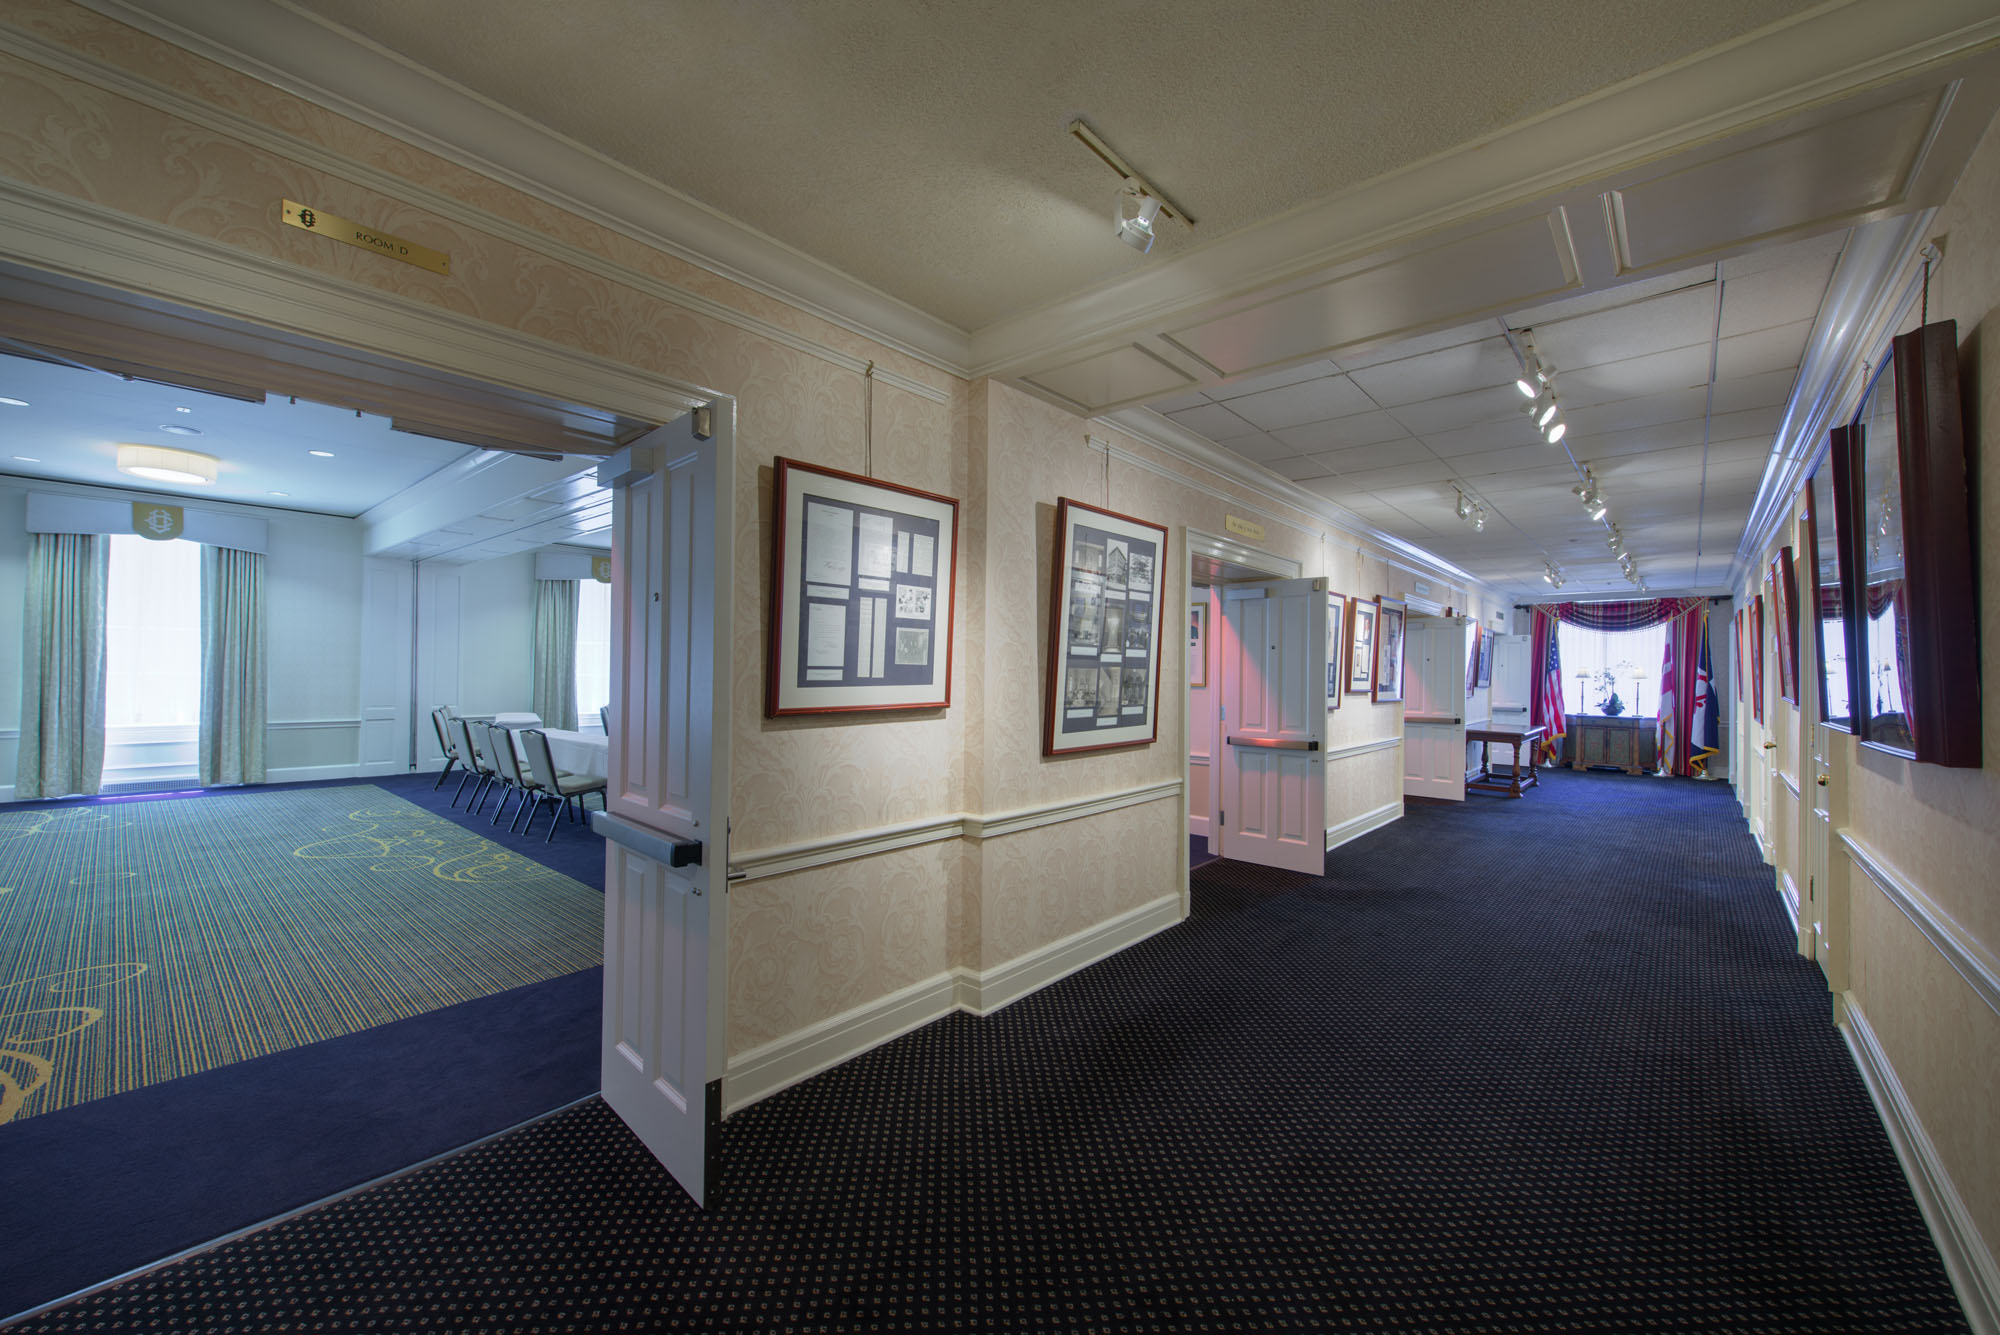 University Club Interior Image201914.jpg